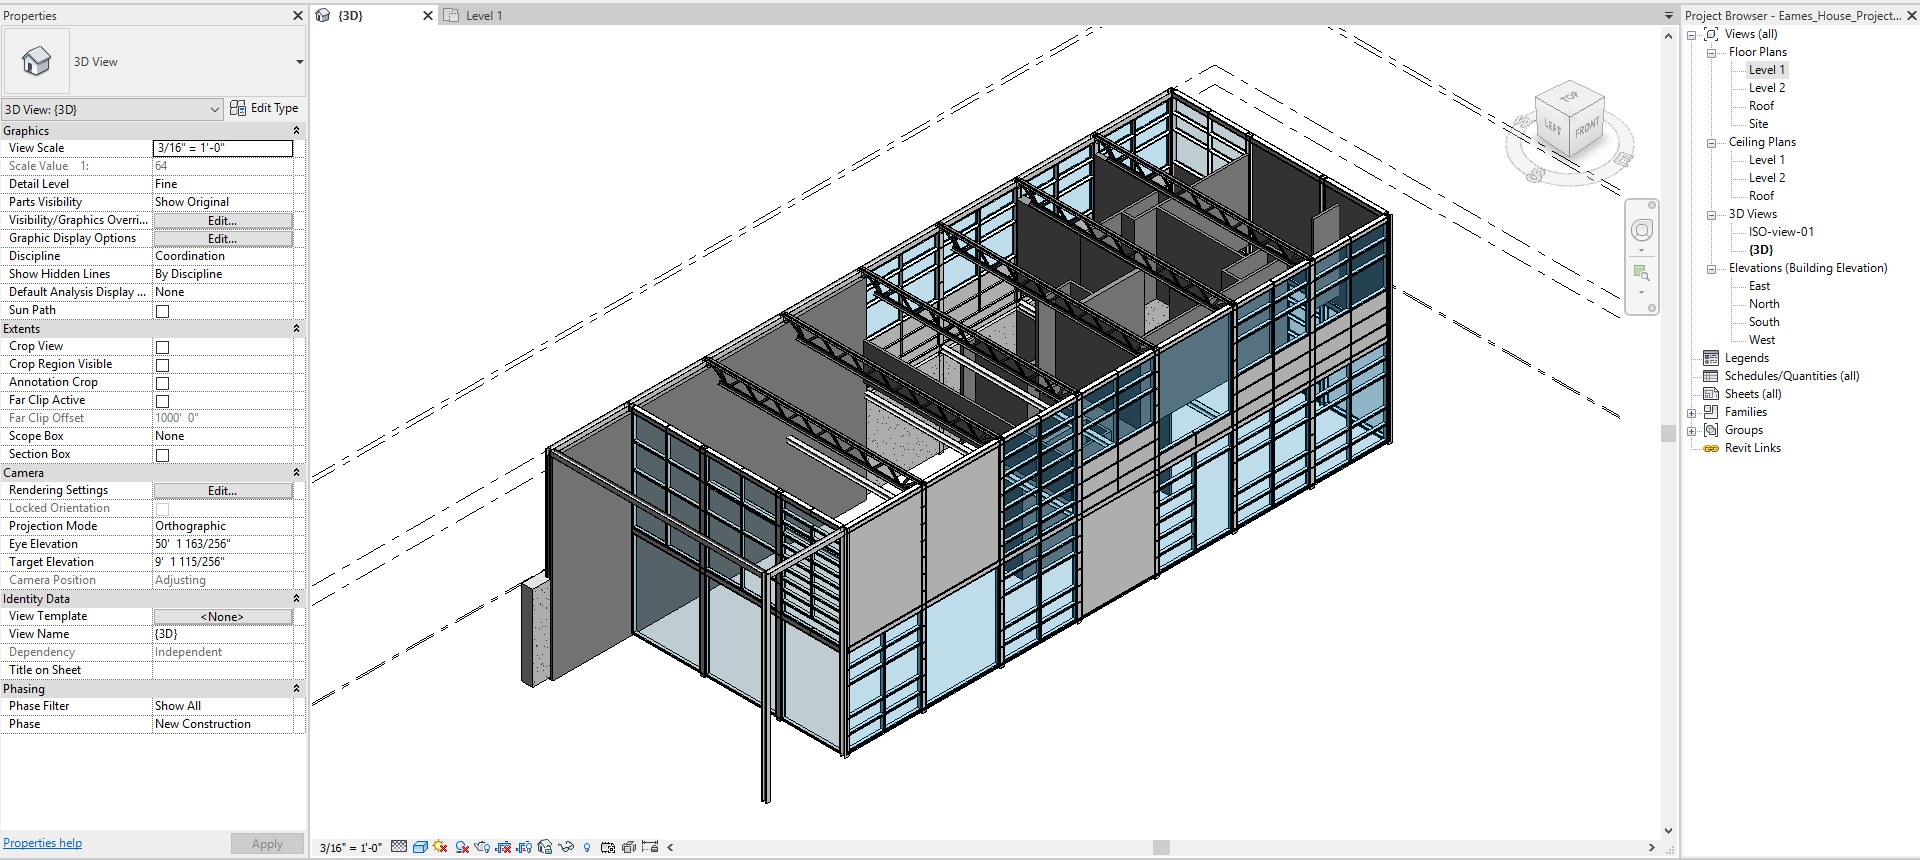 It shows the session highlight presenting beams, walls, and curtain walls. This is the expected result at the end of this lecture.